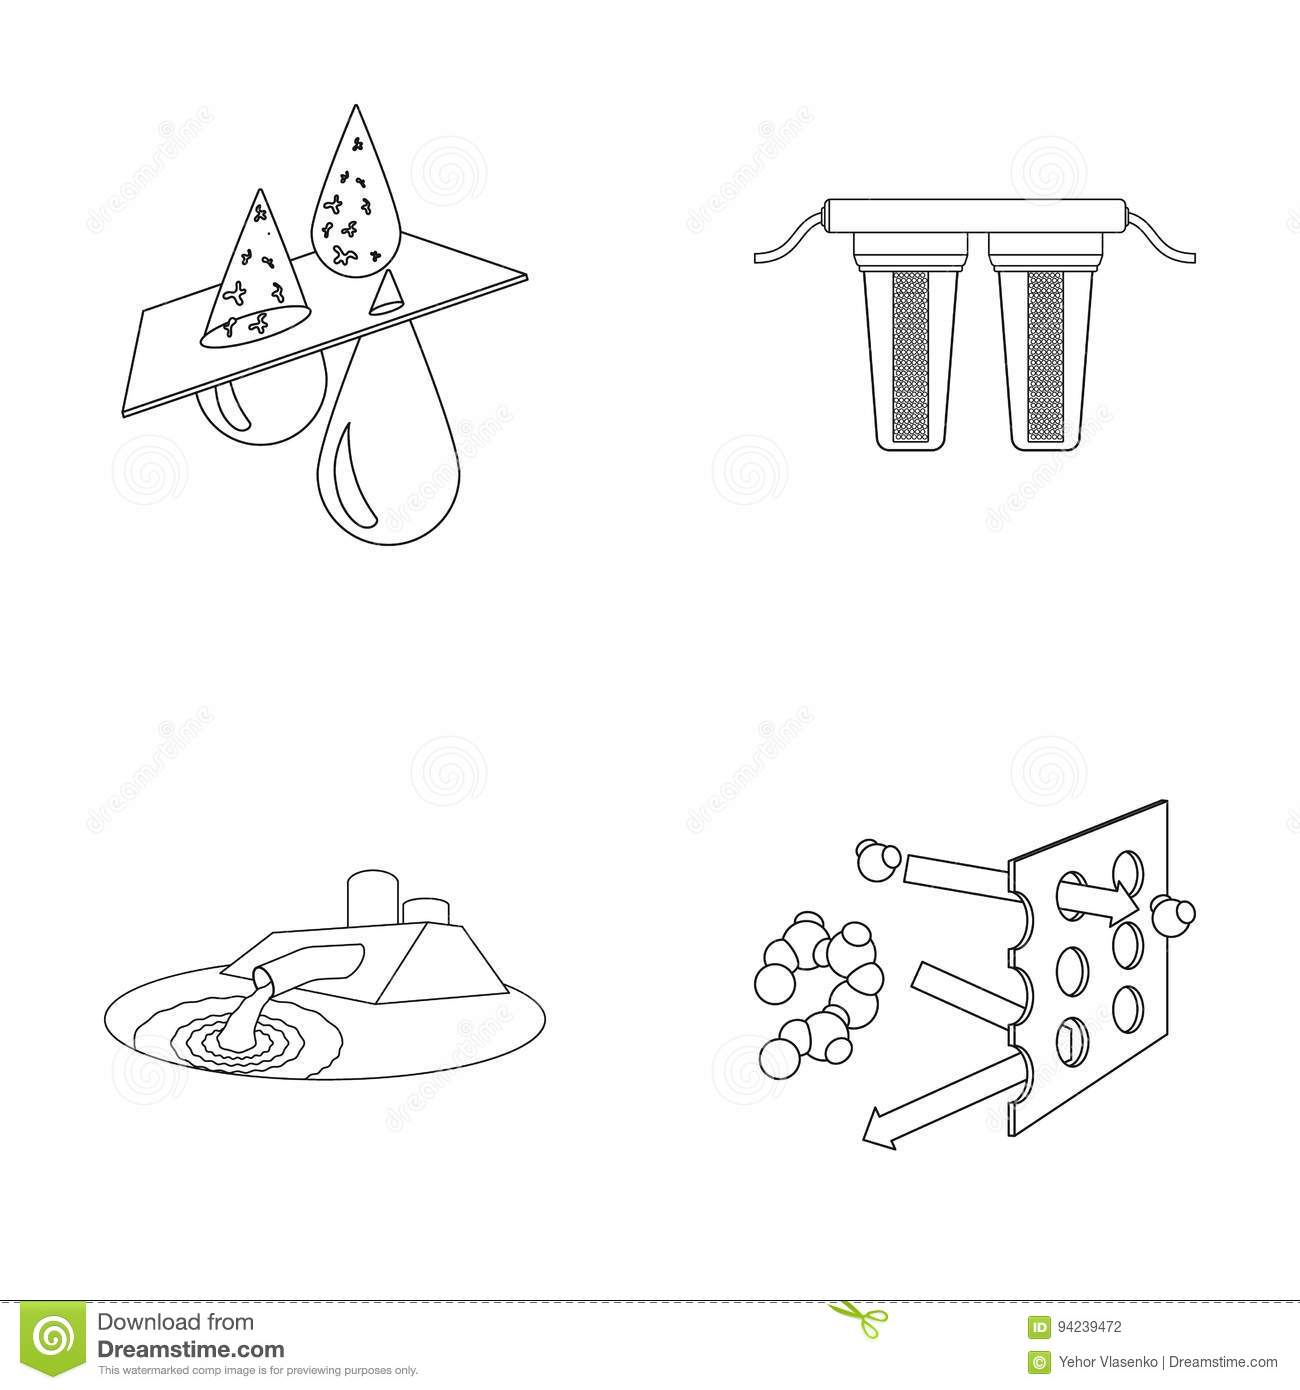 Water Pipe Schematic Symbols